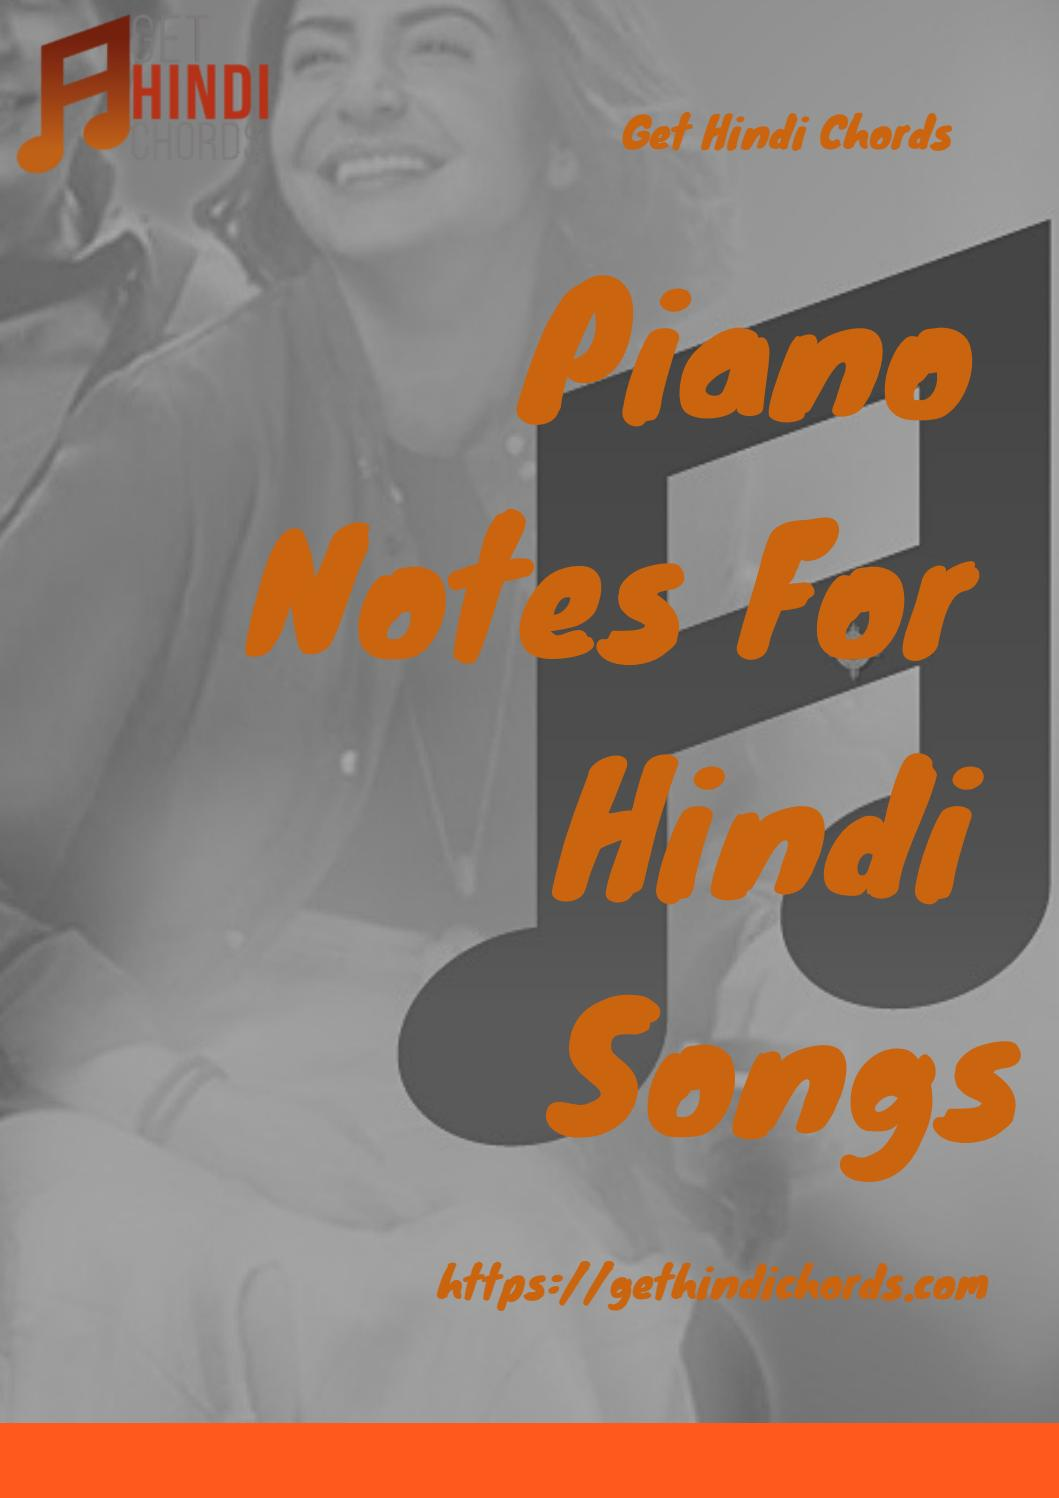 Piano Notes For Hindi Songs By Get Hindi Chords Issuu 81532879 theory of indian ragas. piano notes for hindi songs by get